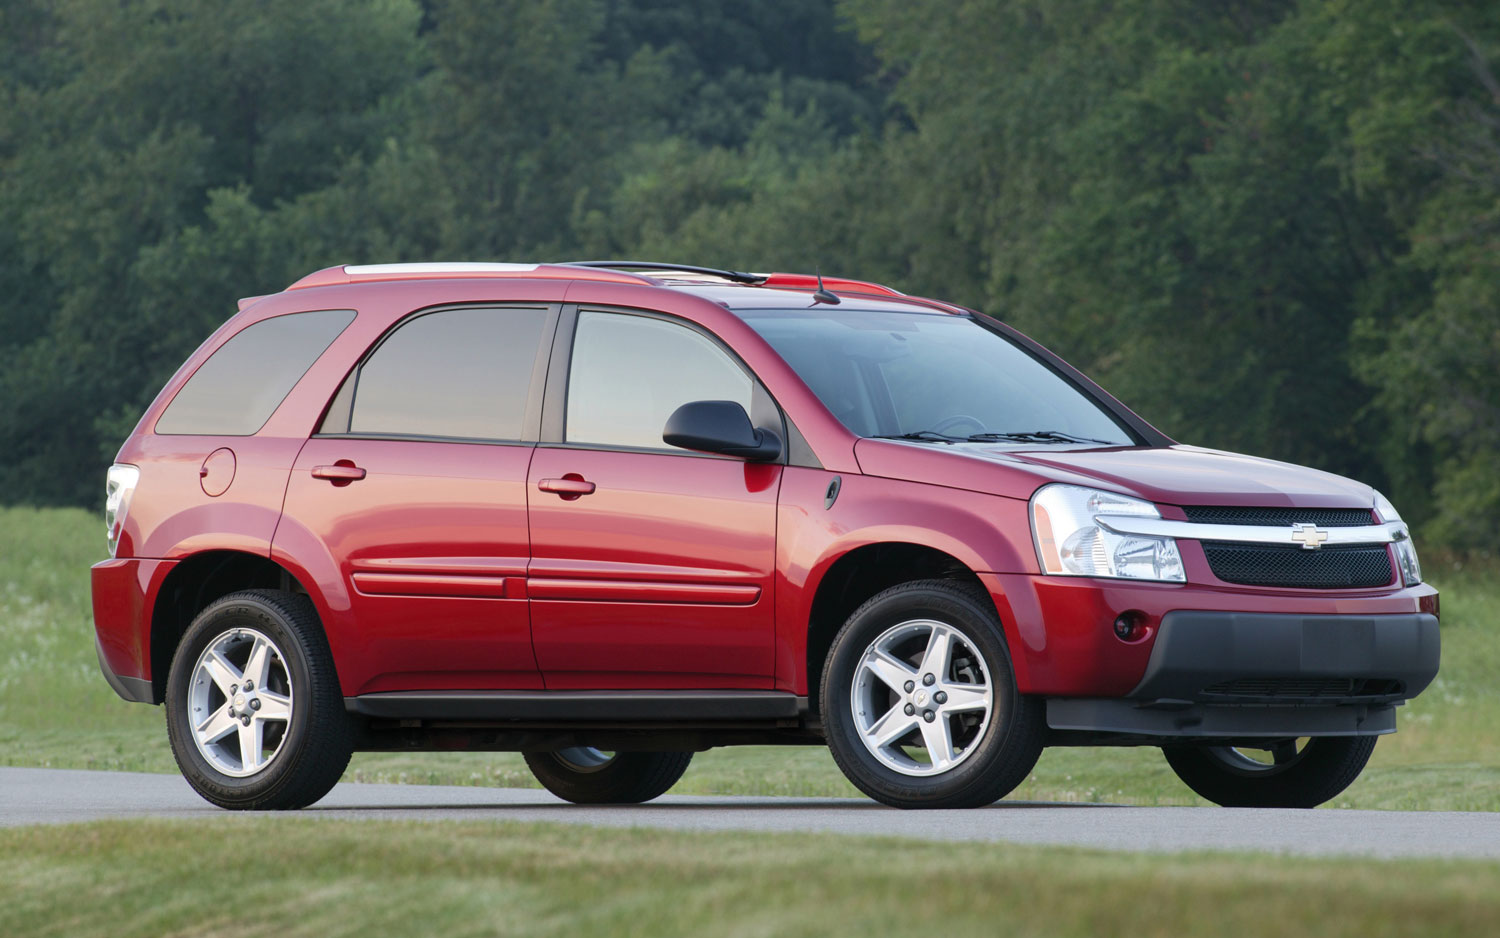 Recalls: 2007-2009 Chevrolet Cobalt, Equinox Fuel Pump; 2012 Nissan  Frontier, Pathfinder Wheel Hub